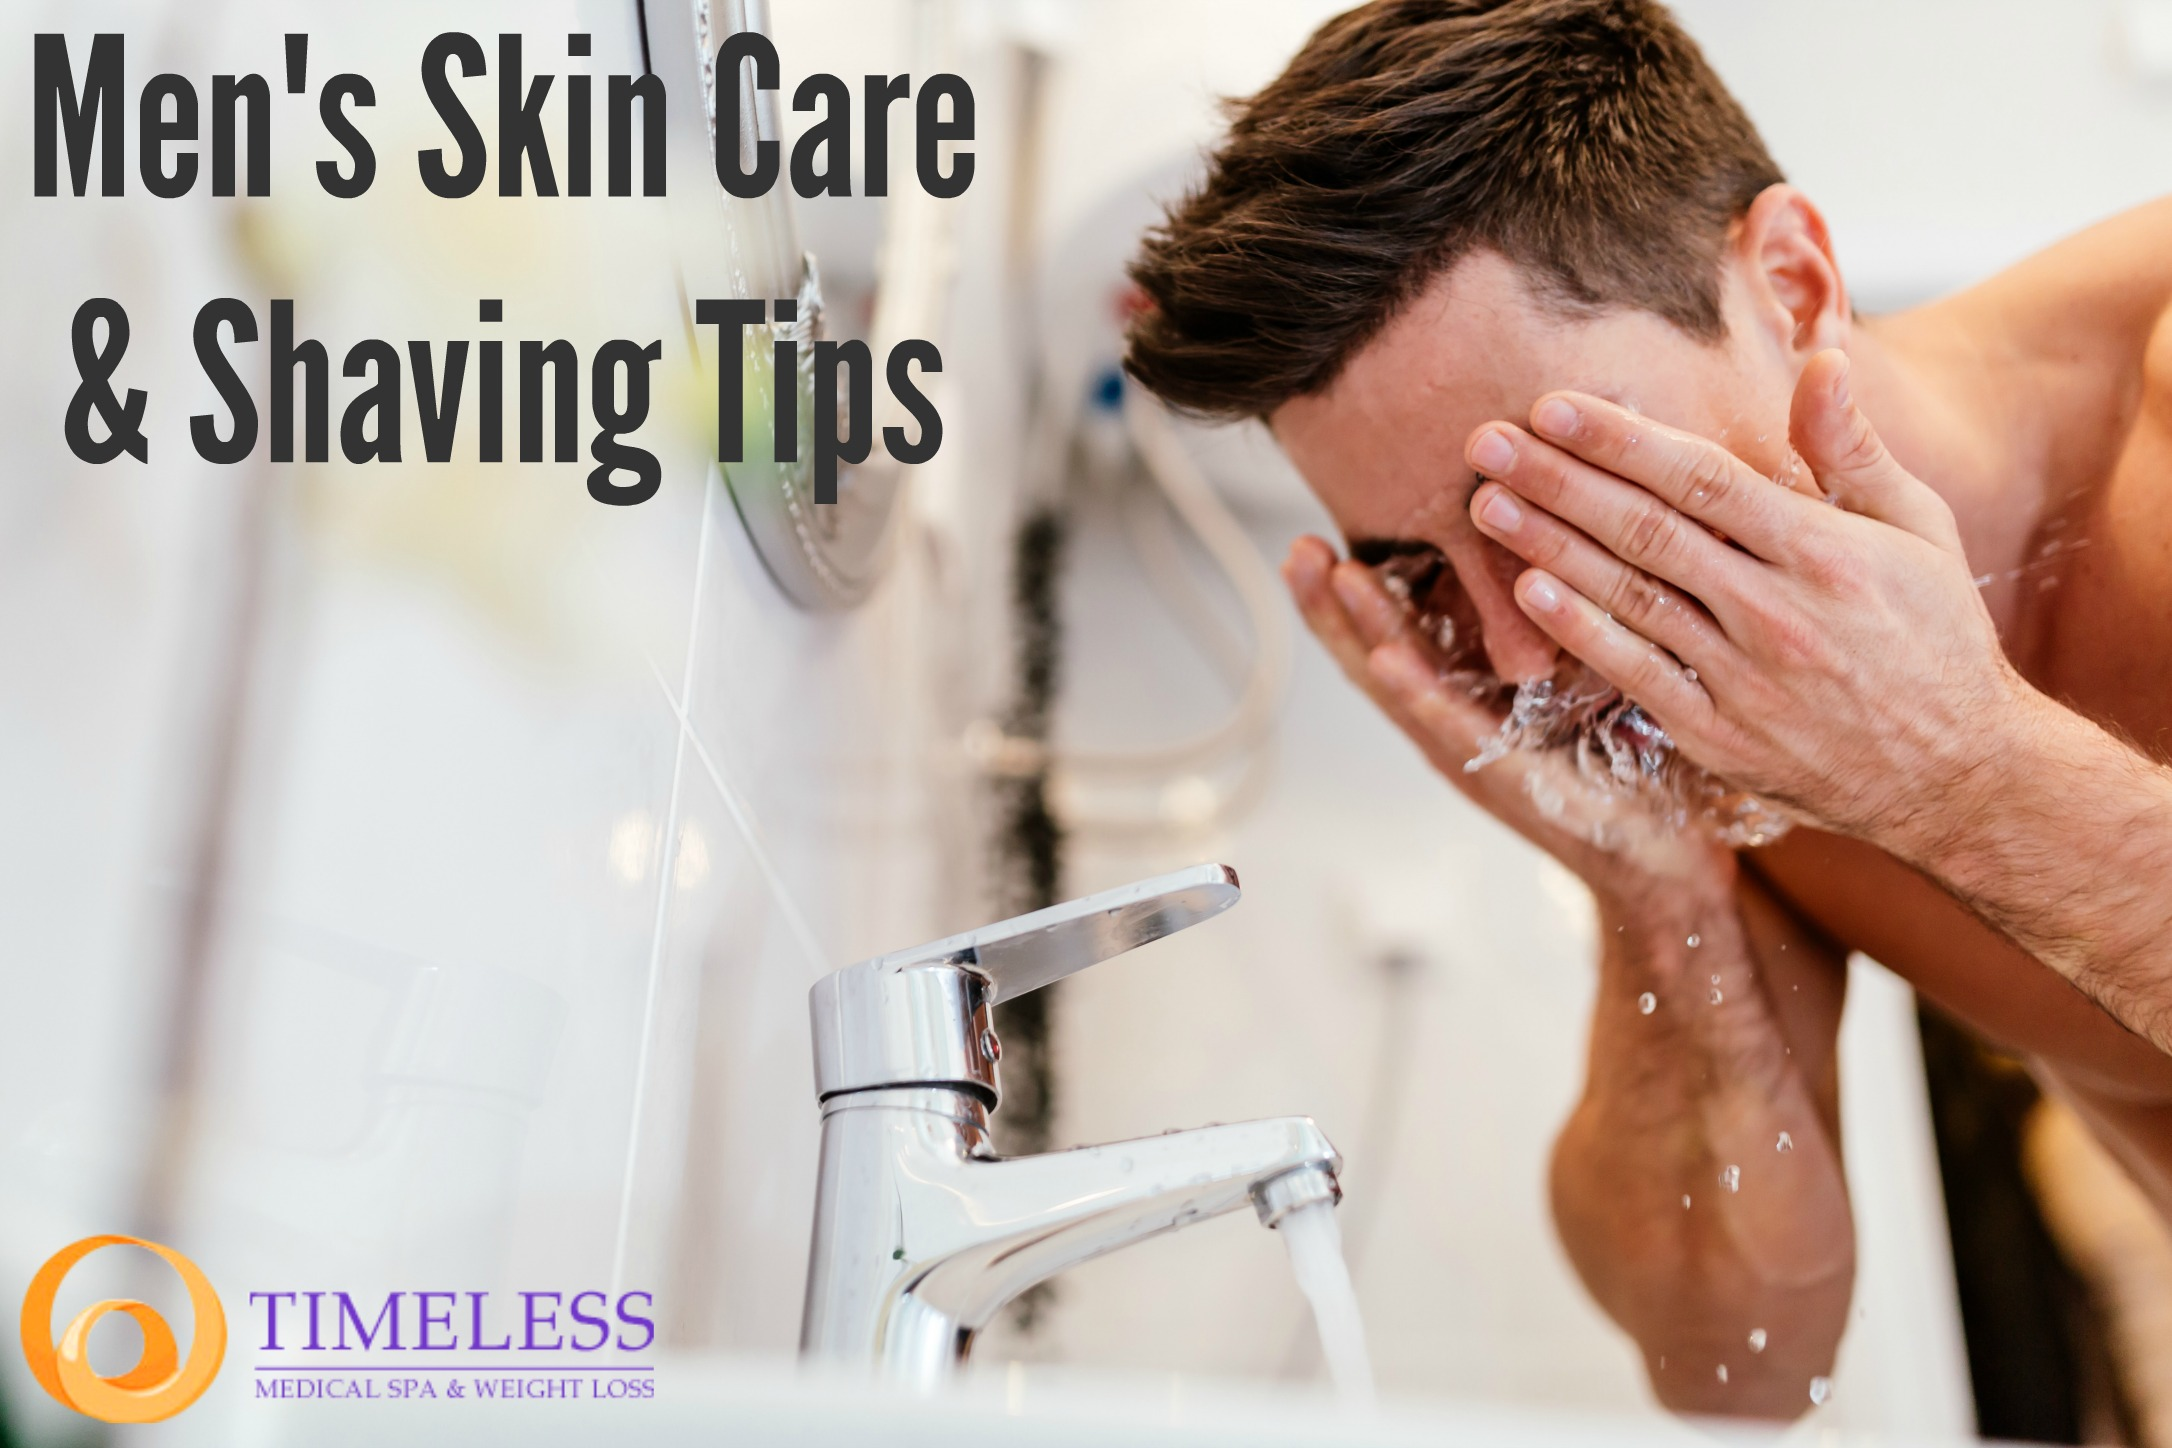 Men's skin care regimen and shaving tips | TimeLess Medical Spa Skin Care Blog | Ogden, UT